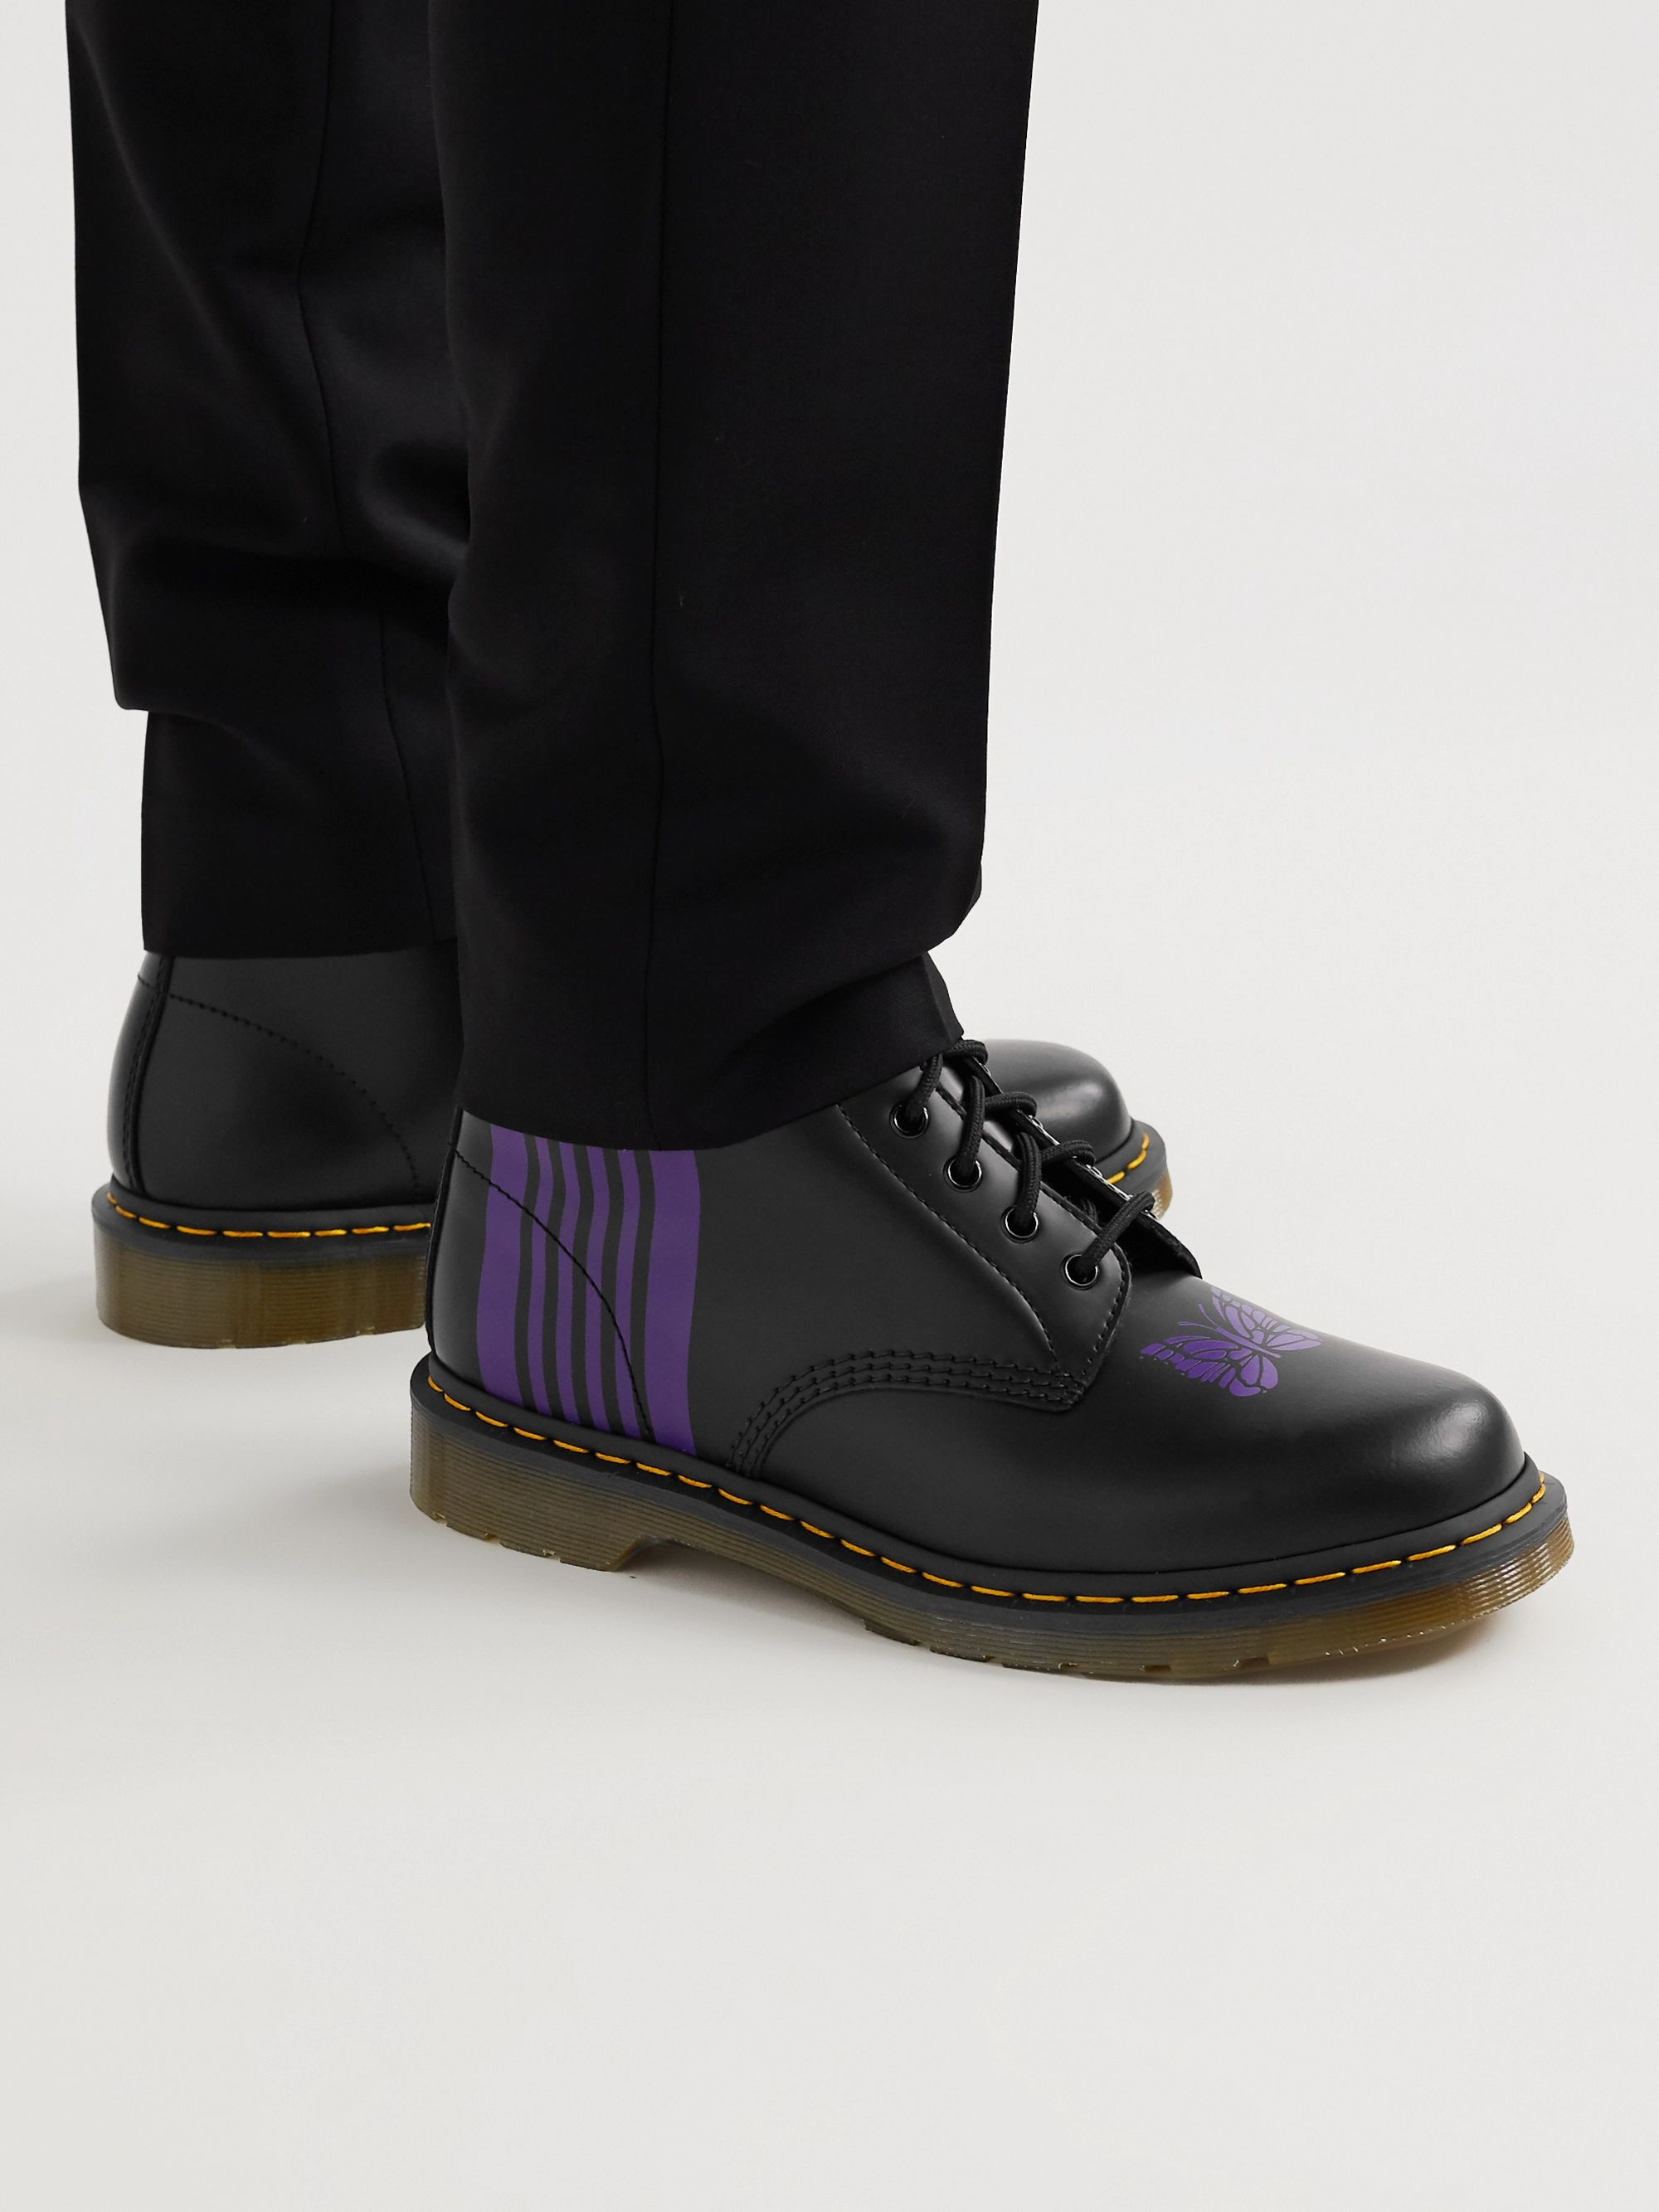 Dr. Martens + Needles 1460 Printed Leather Boots